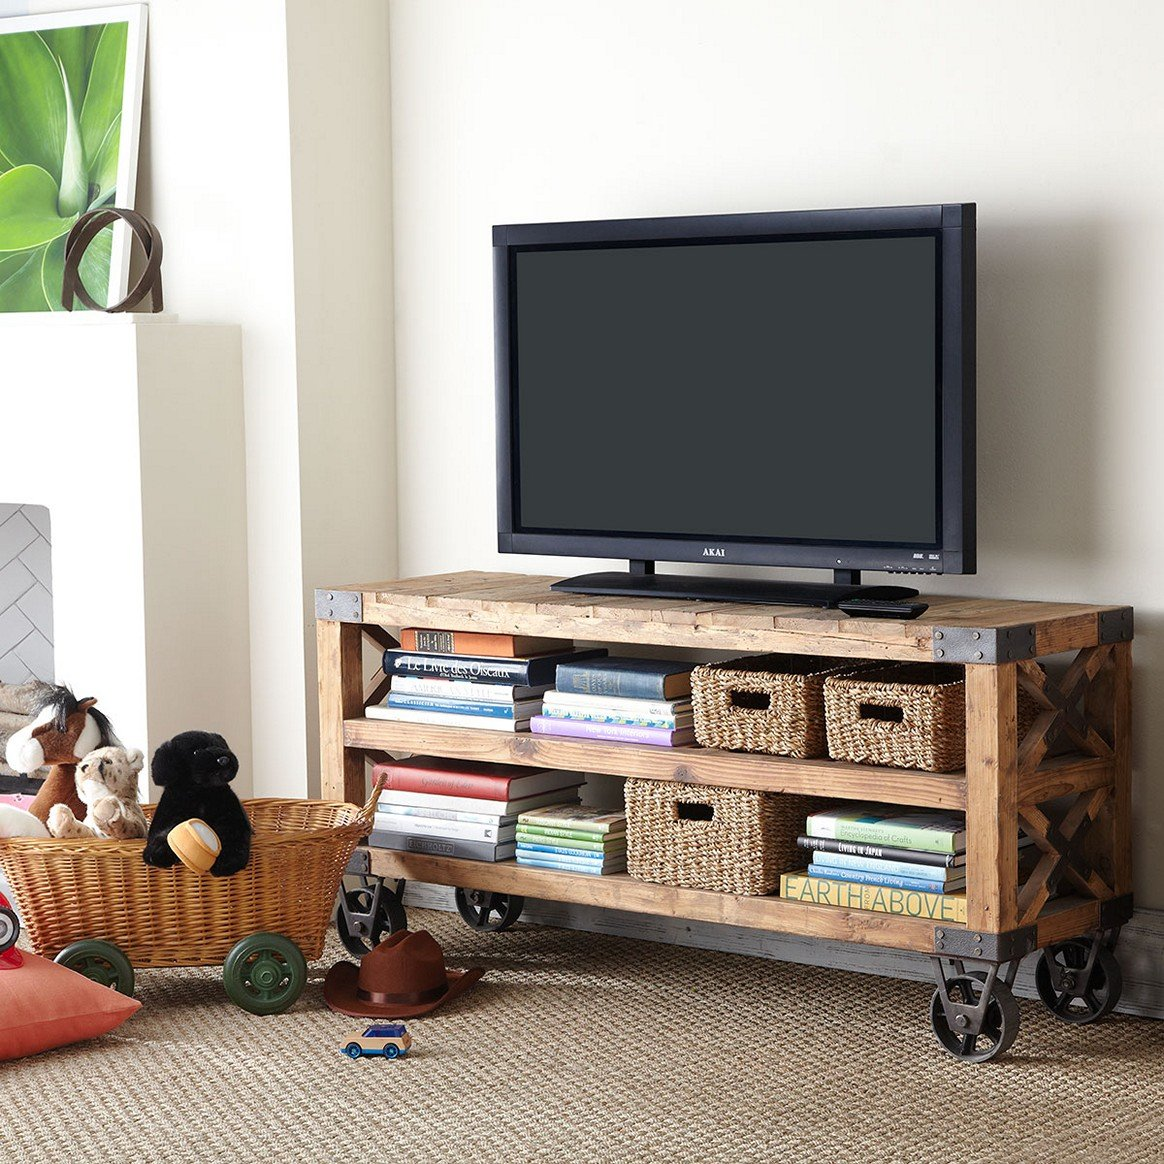 21 Diy Tv Stand Ideas For Your Weekend Home Project # Meuble Tv Console